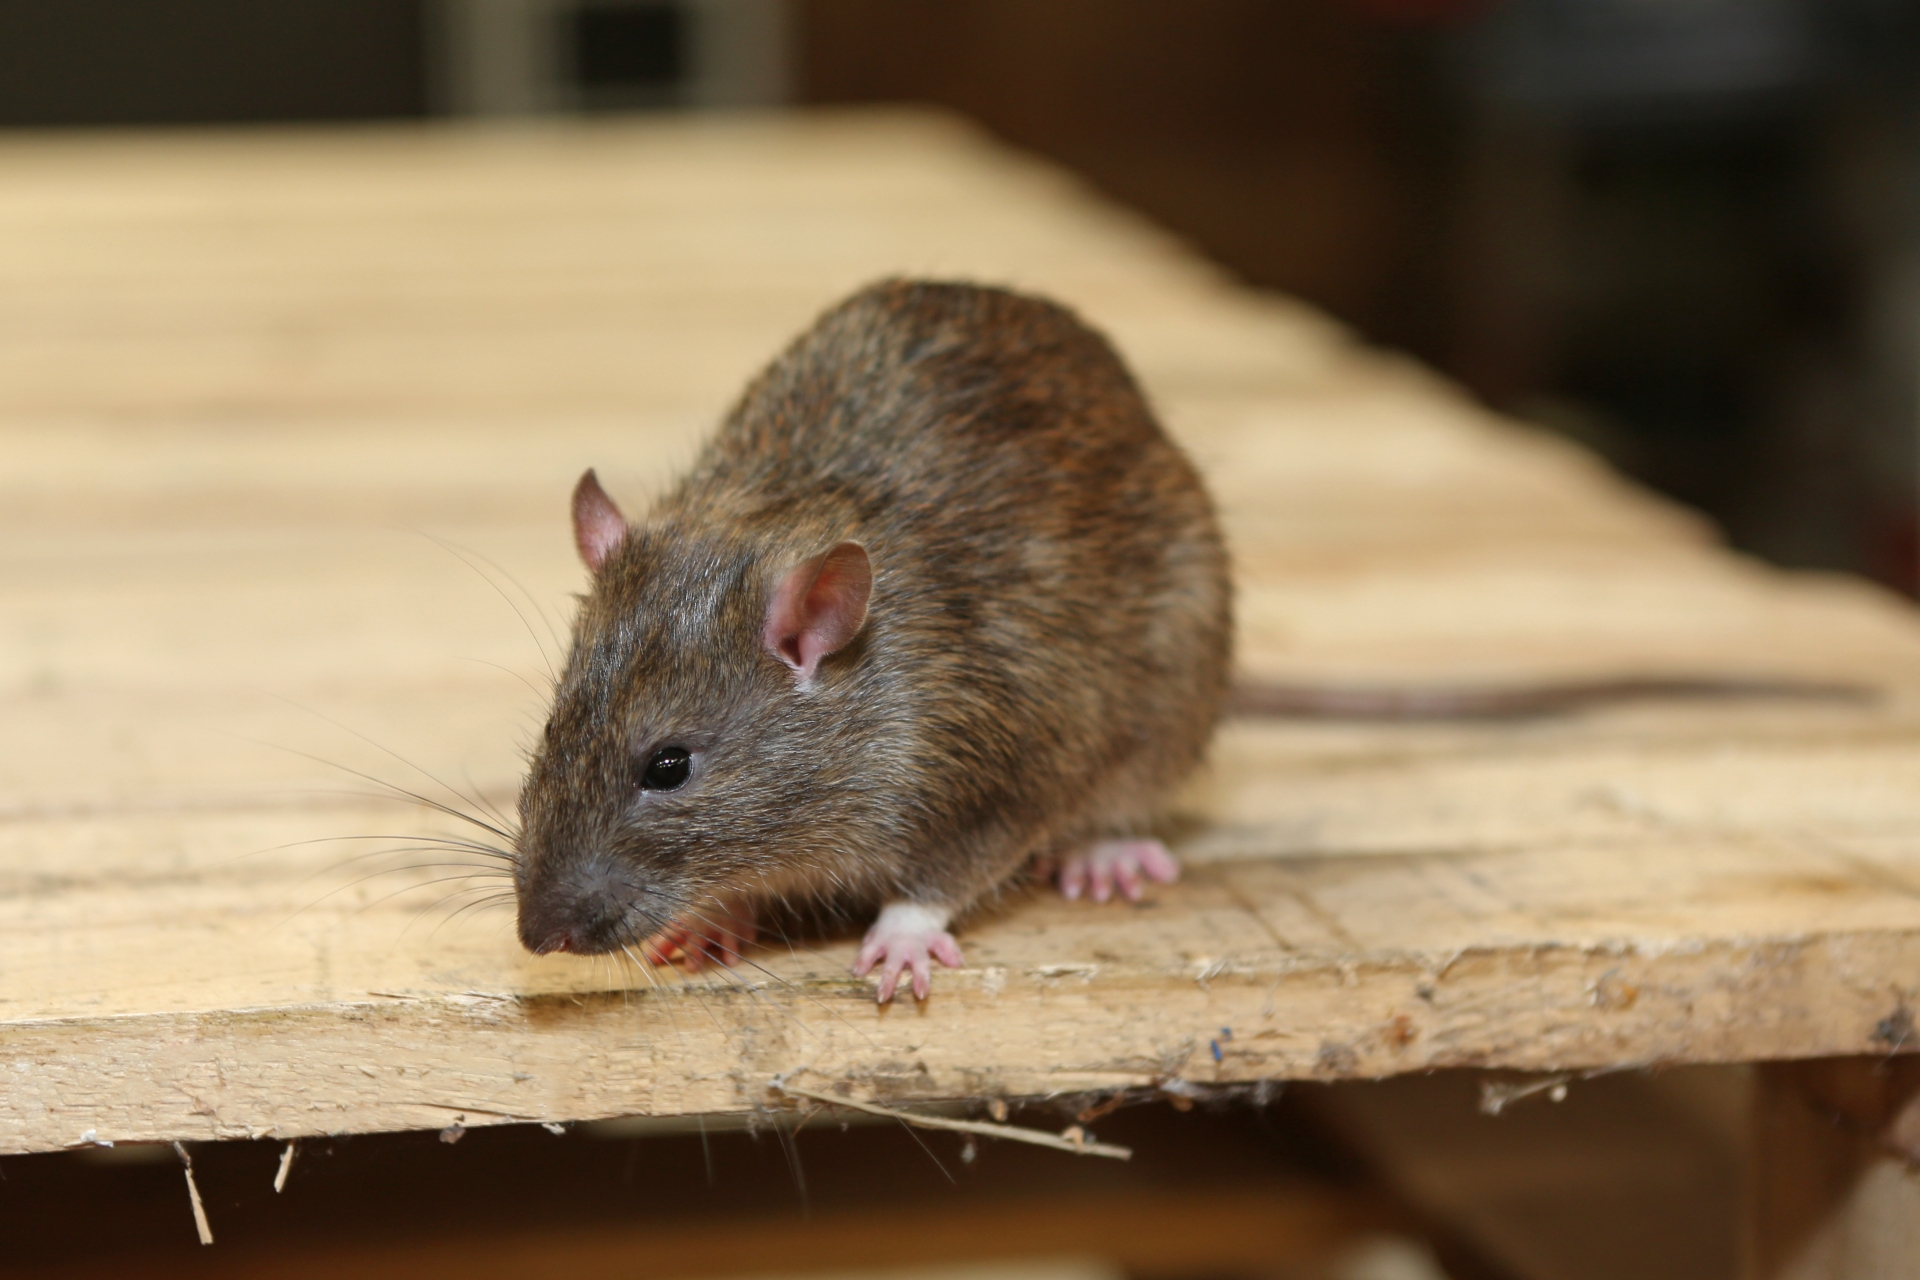 Rat Infestation, Pest Control in Friern Barnet, New Southgate, N11. Call Now 020 8166 9746